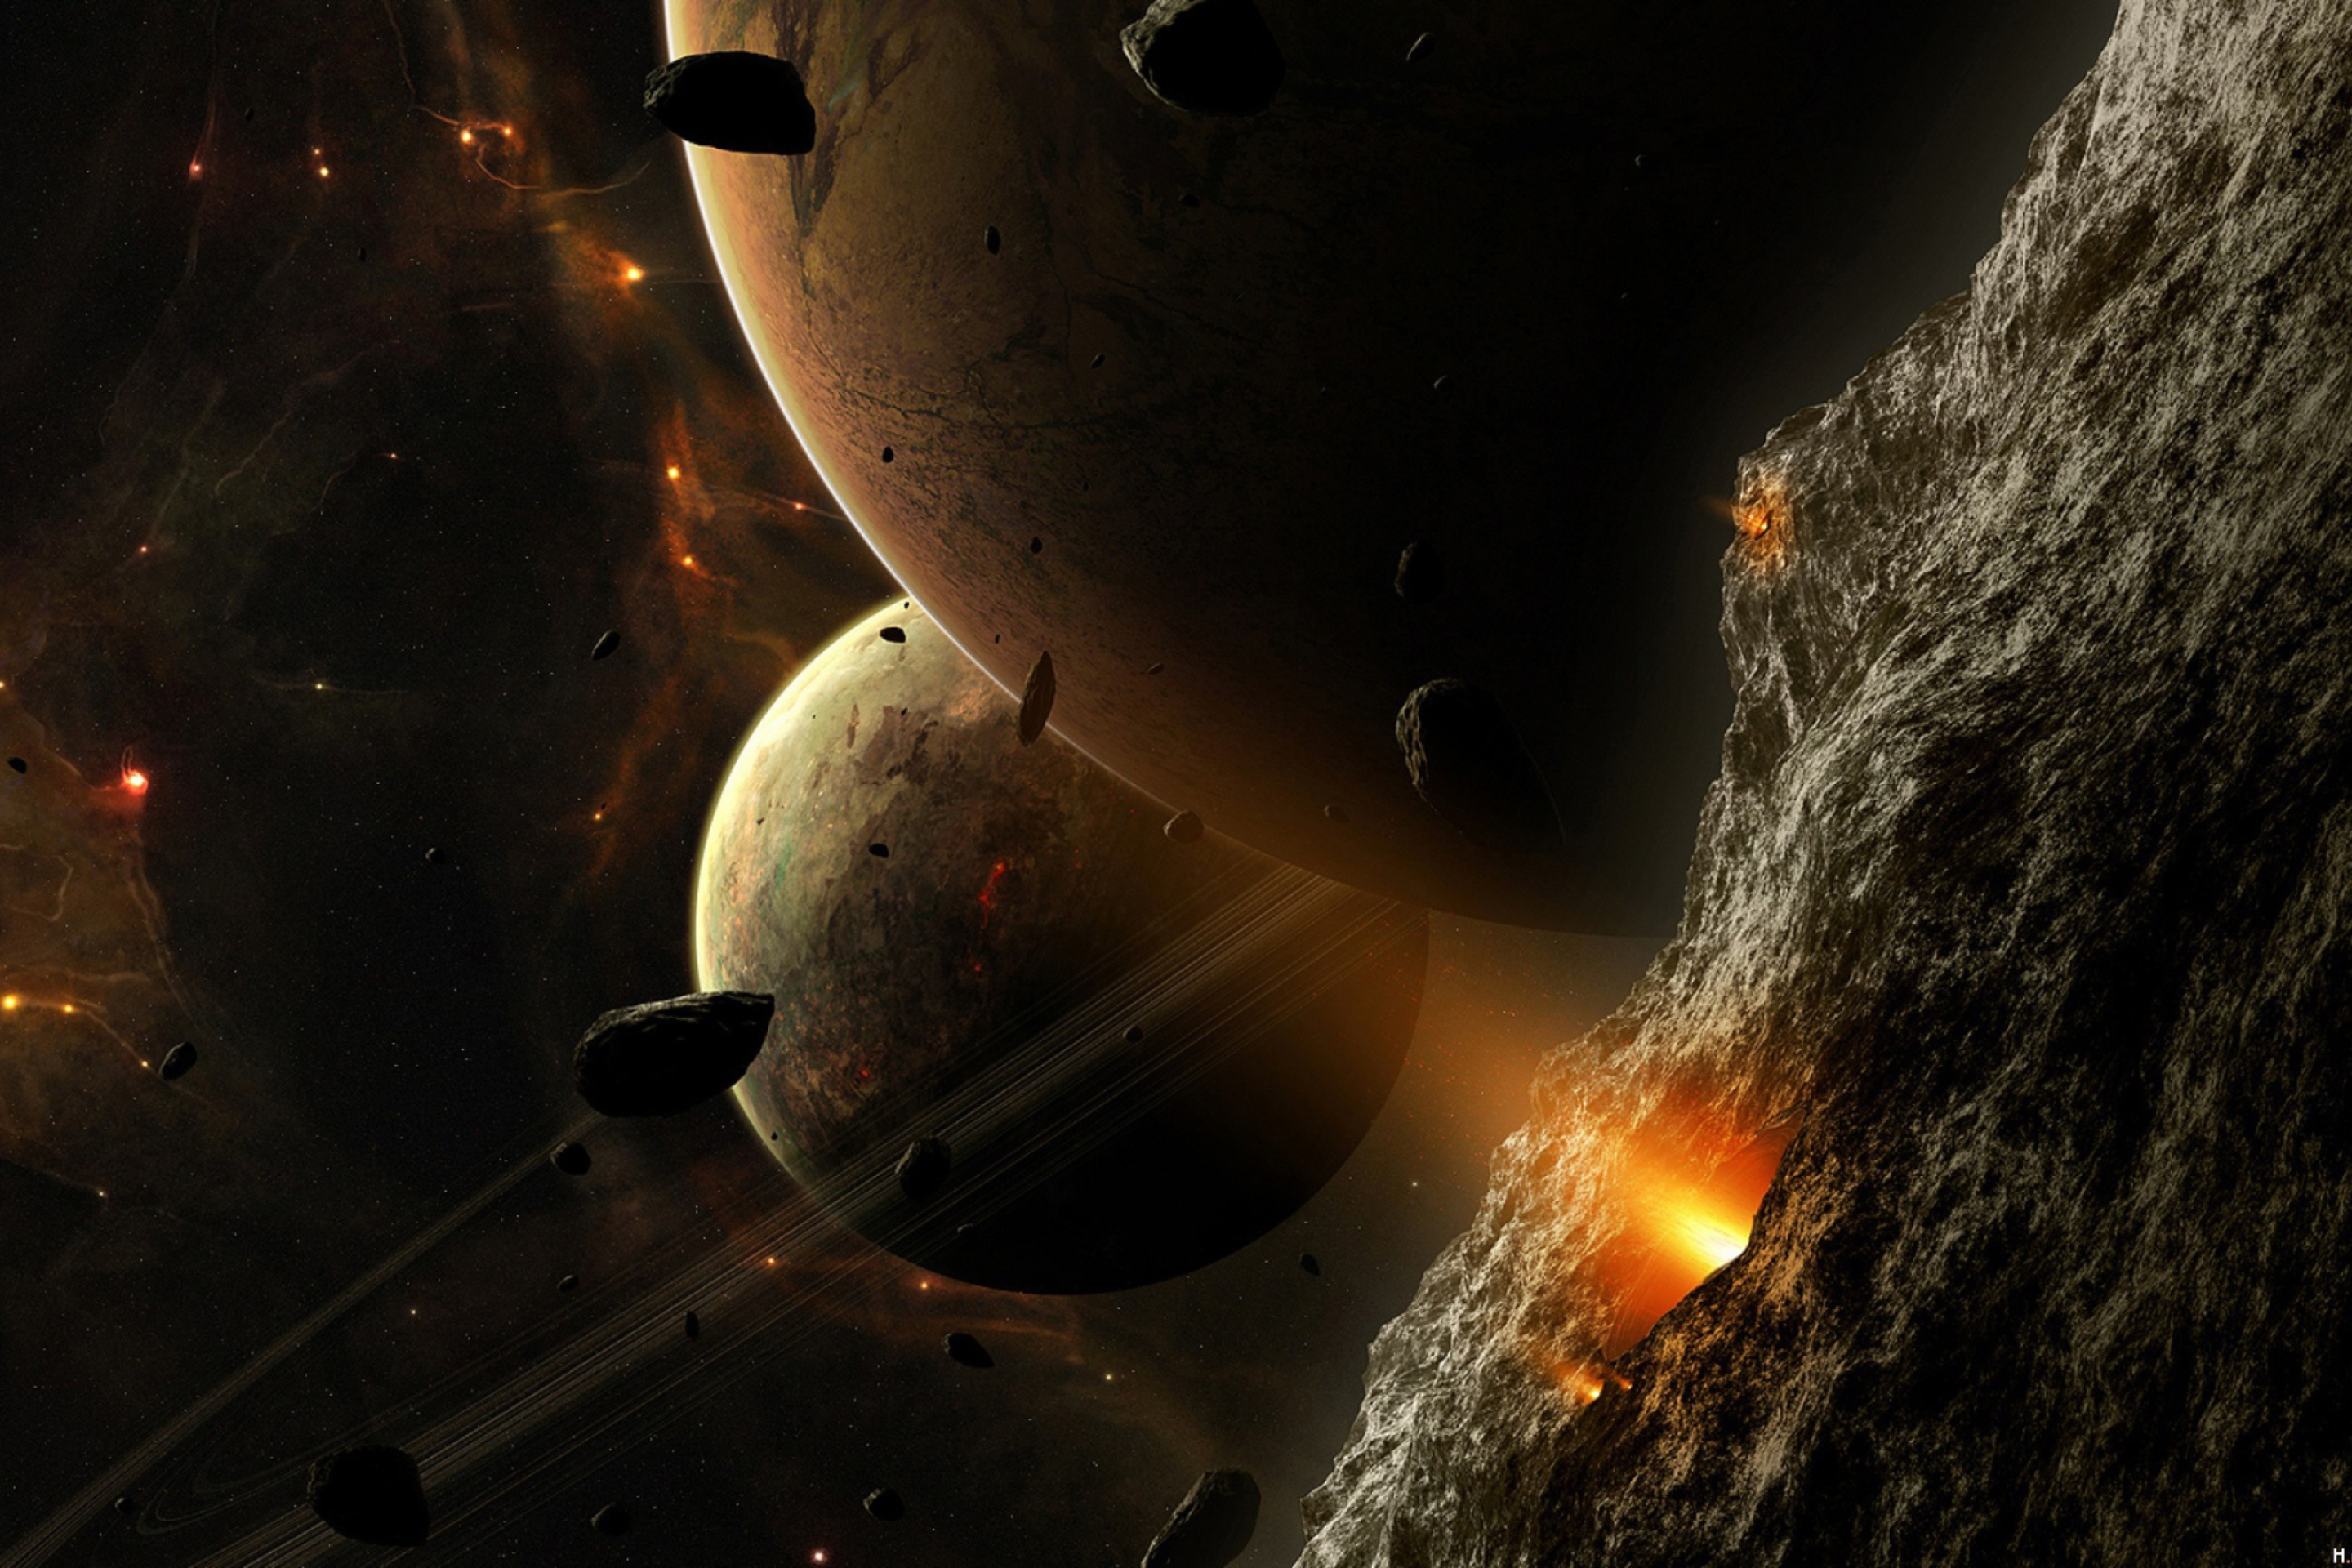 asteroid planet game - HD 2880×1920